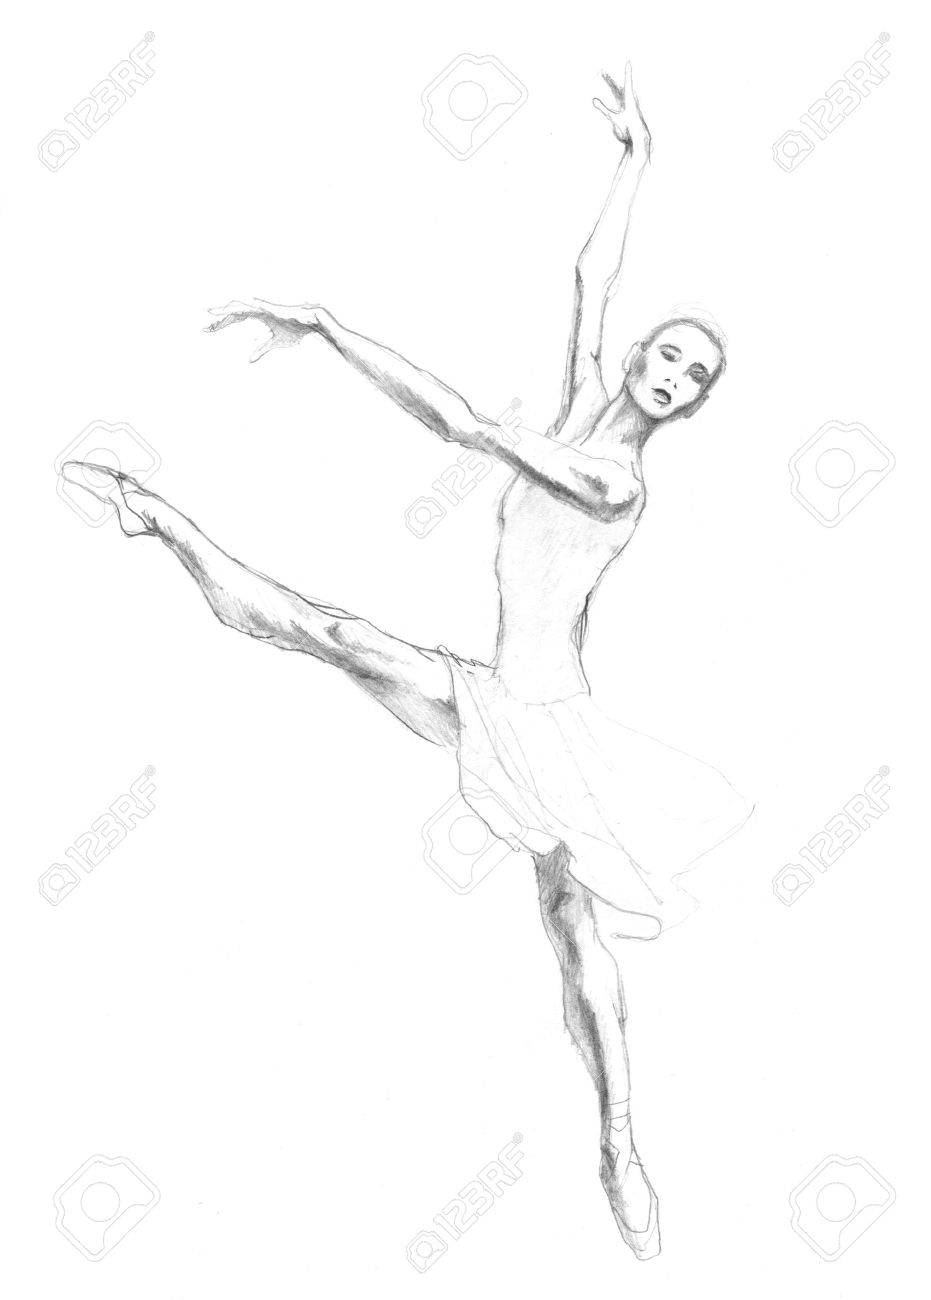 Dancing ballerina illustration painted by pencil sketch stock illustration 51669563